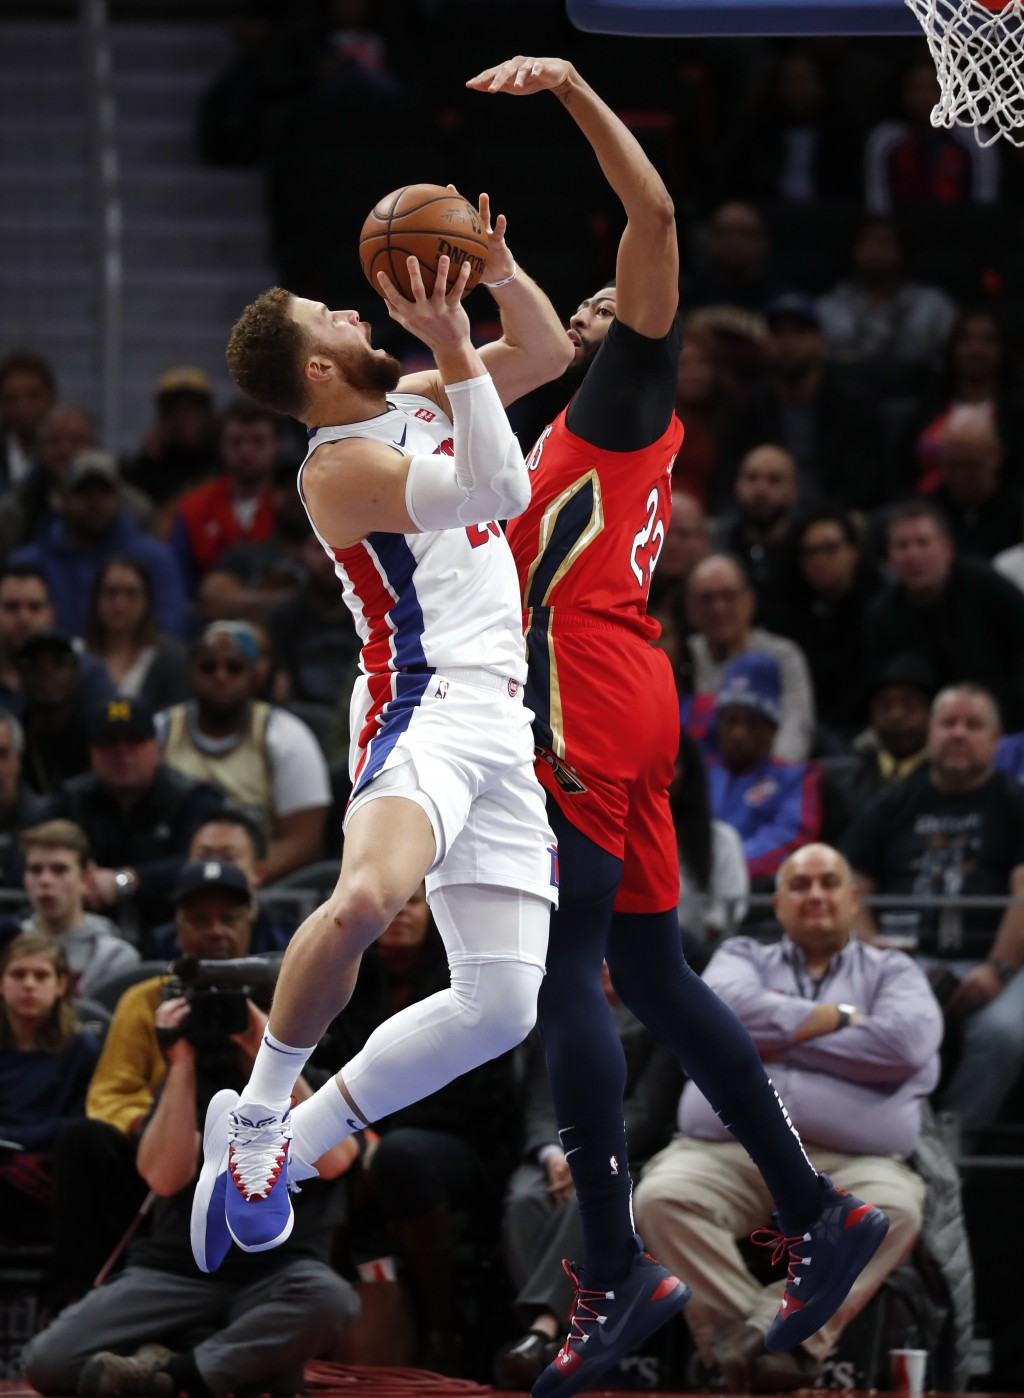 Detroit Pistons forward Blake Griffin (23) drives on New Orleans Pelicans forward Anthony Davis (23) in the second half of an NBA basketball game in D...